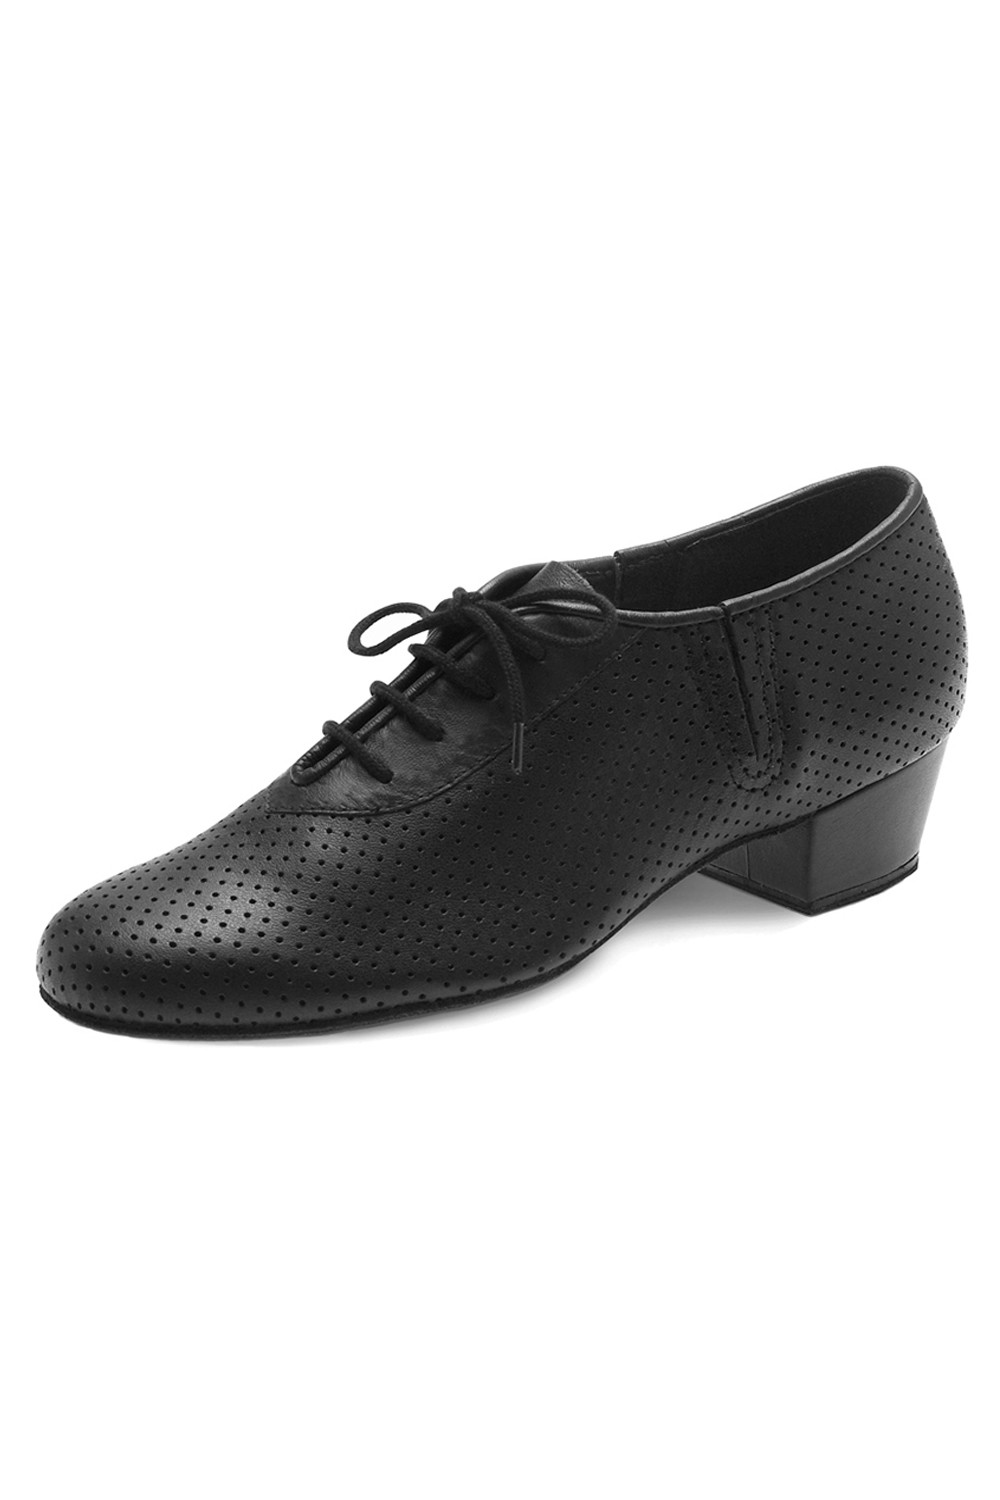 Practice Shoe Women's Ballroom & Latin Shoes